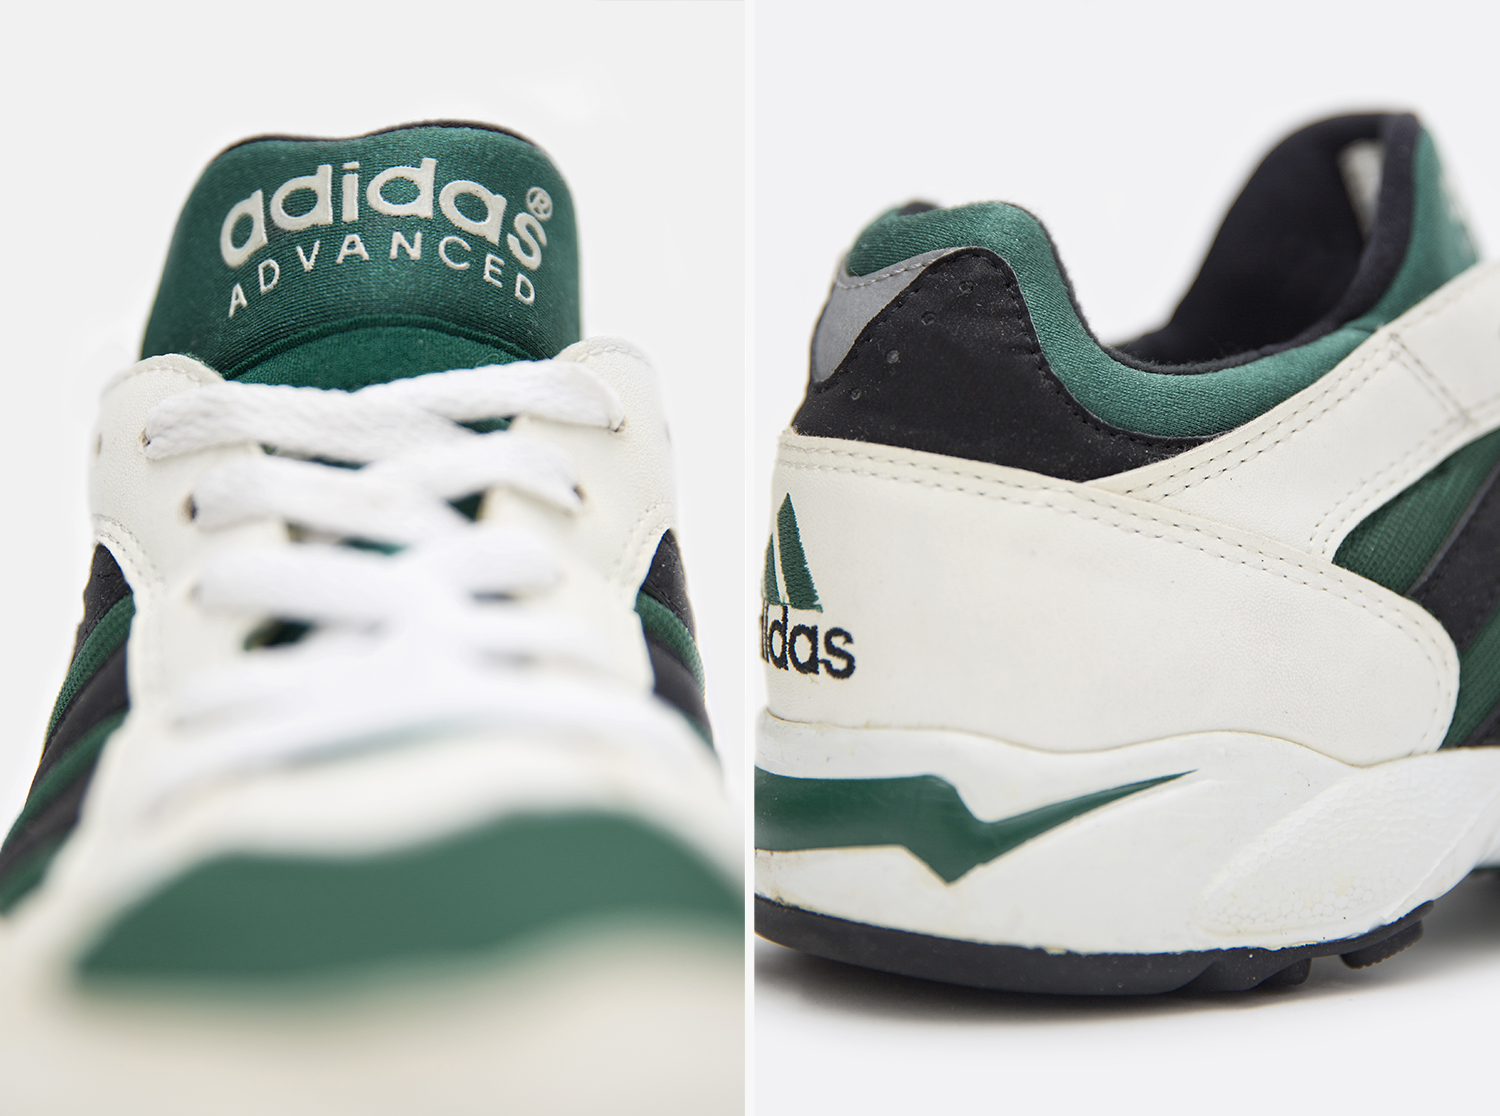 adidas_EQT_Equipment_lock_up_size_hq_exclusive-15_resize